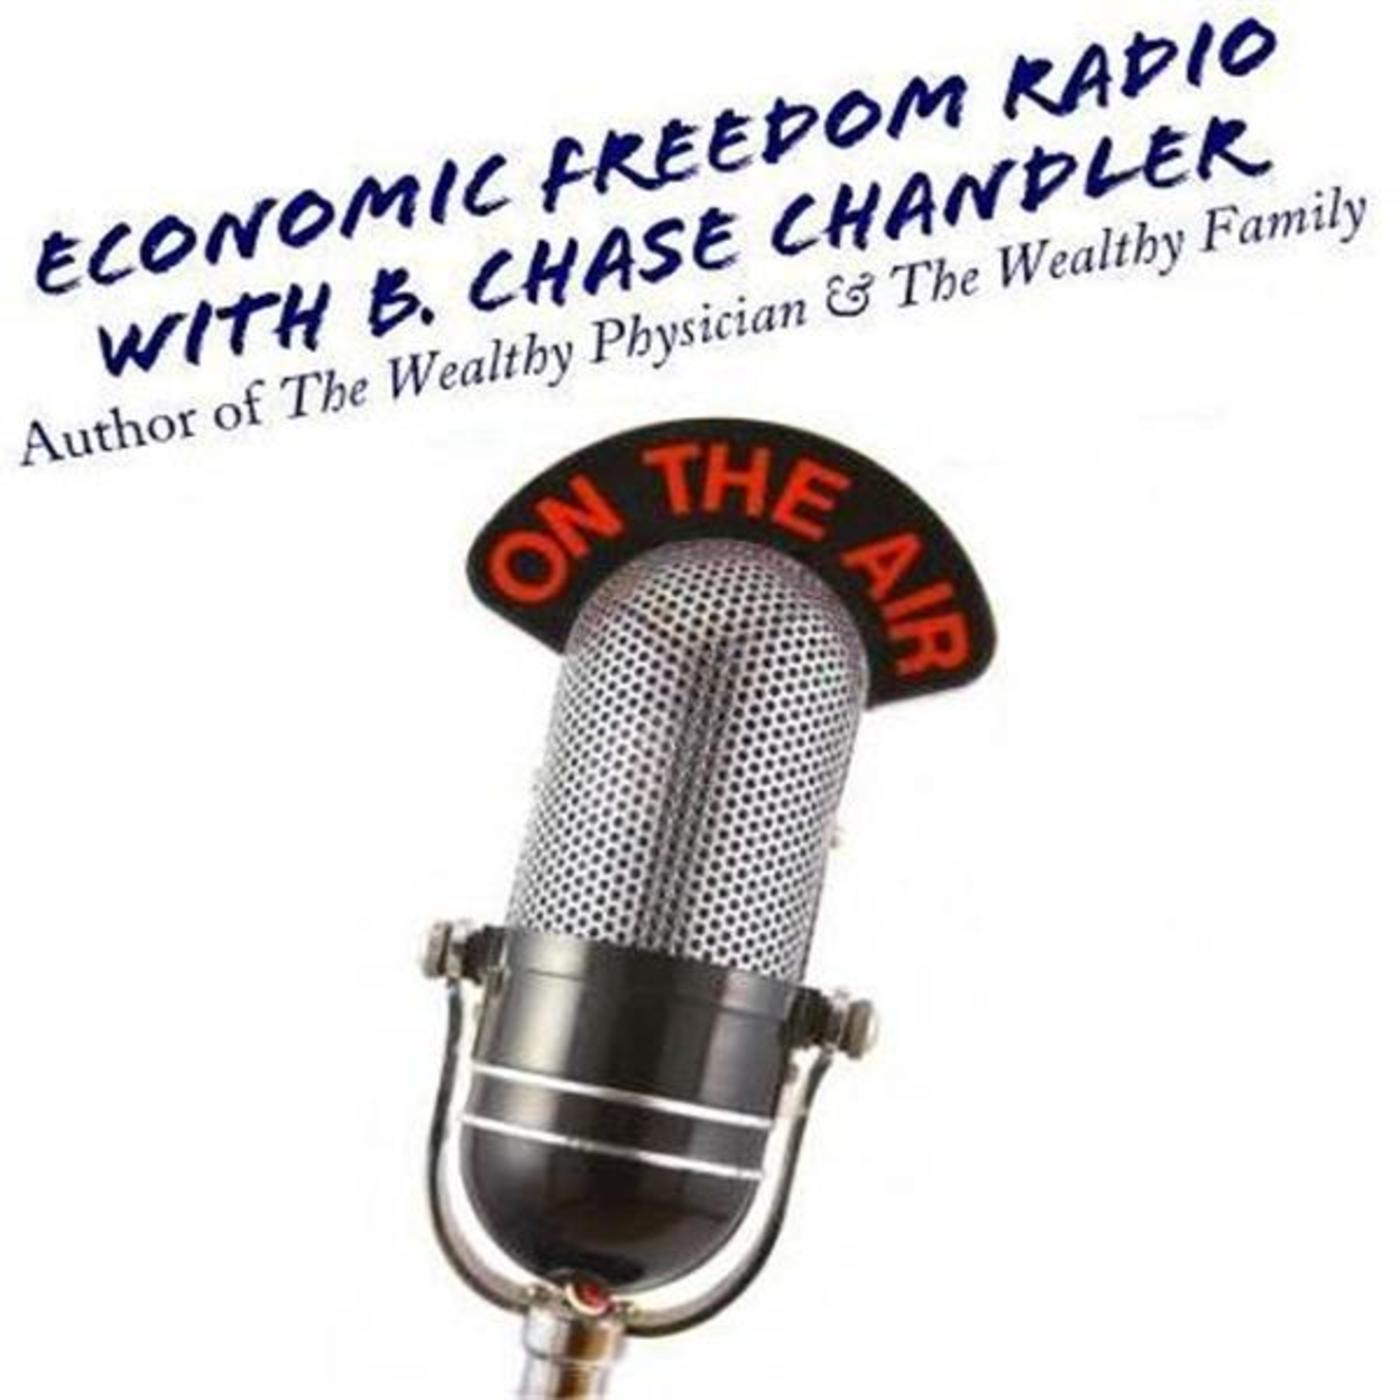 Economic Freedom Radio